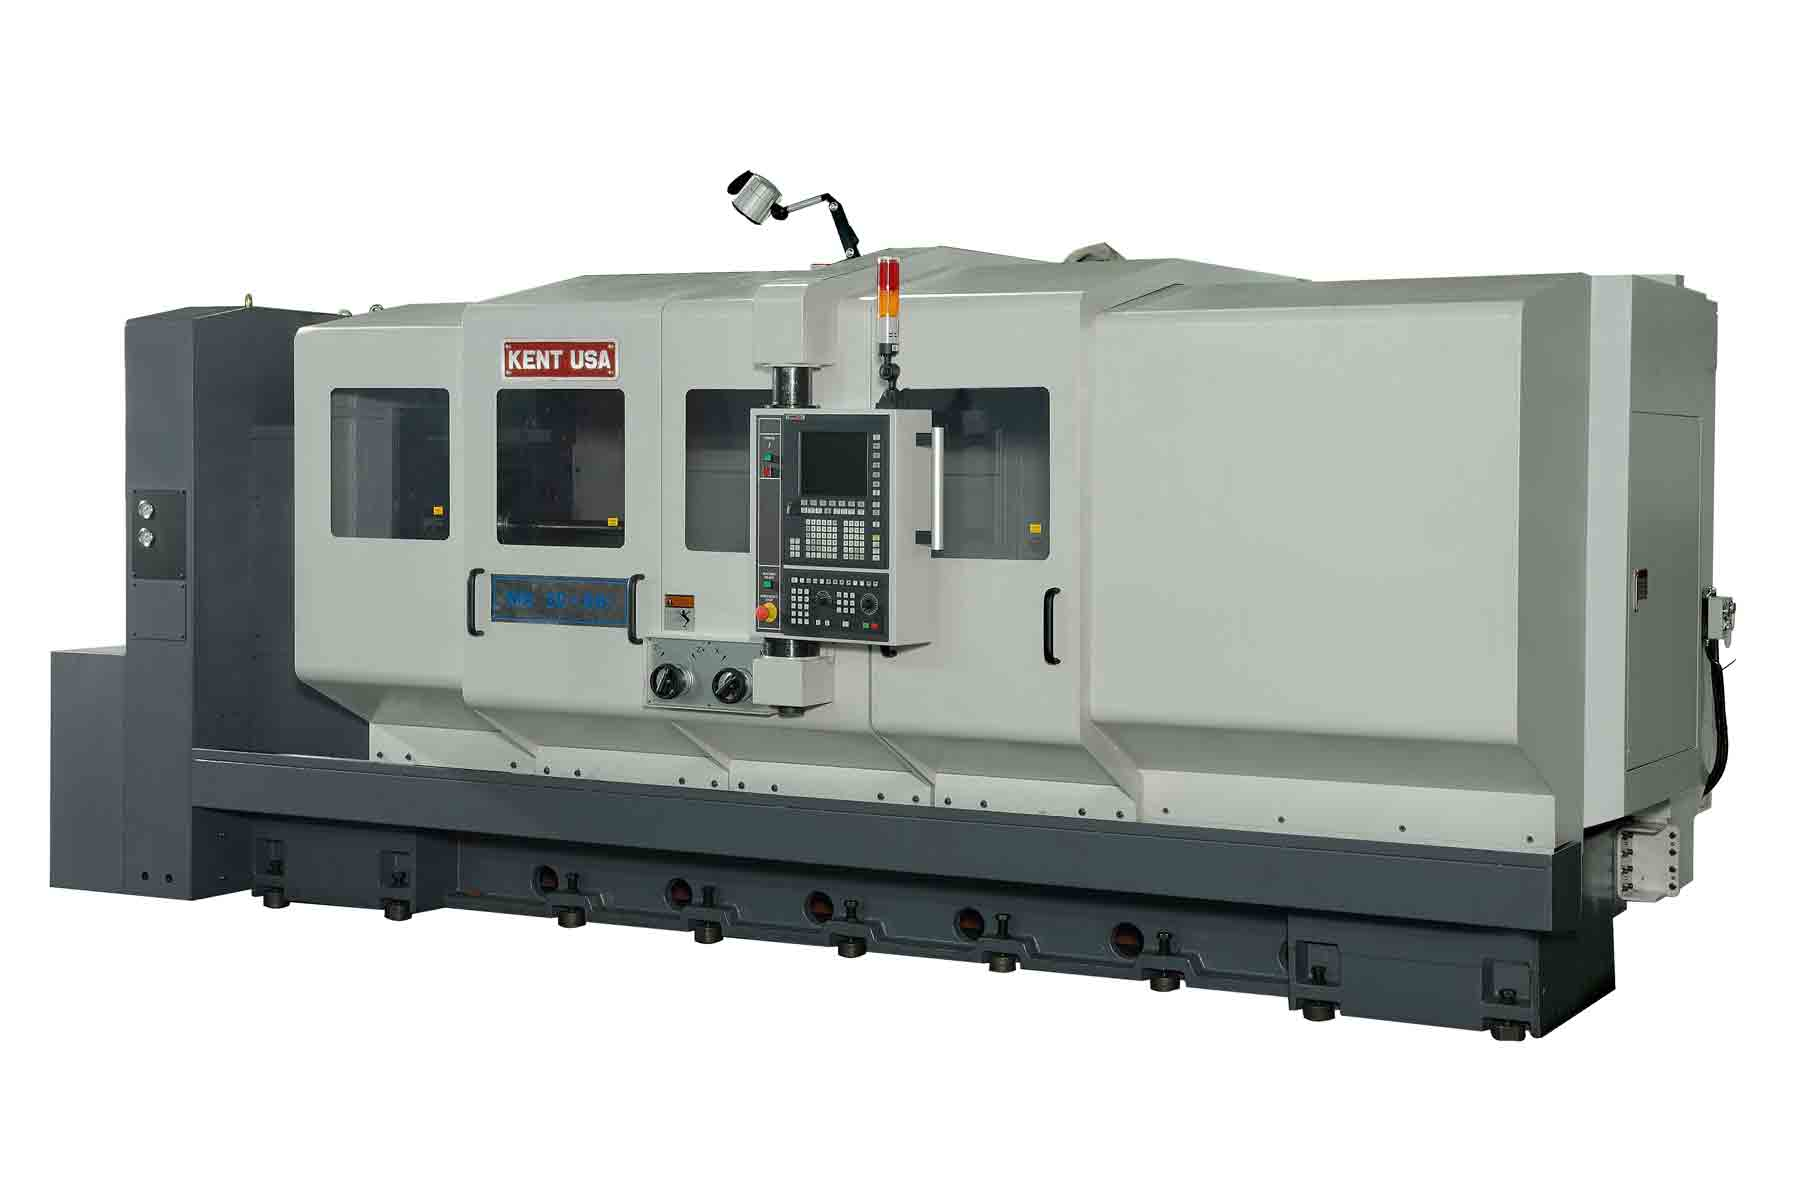 Kent-CNC-MA-Series Double Turret CNC Turning Center